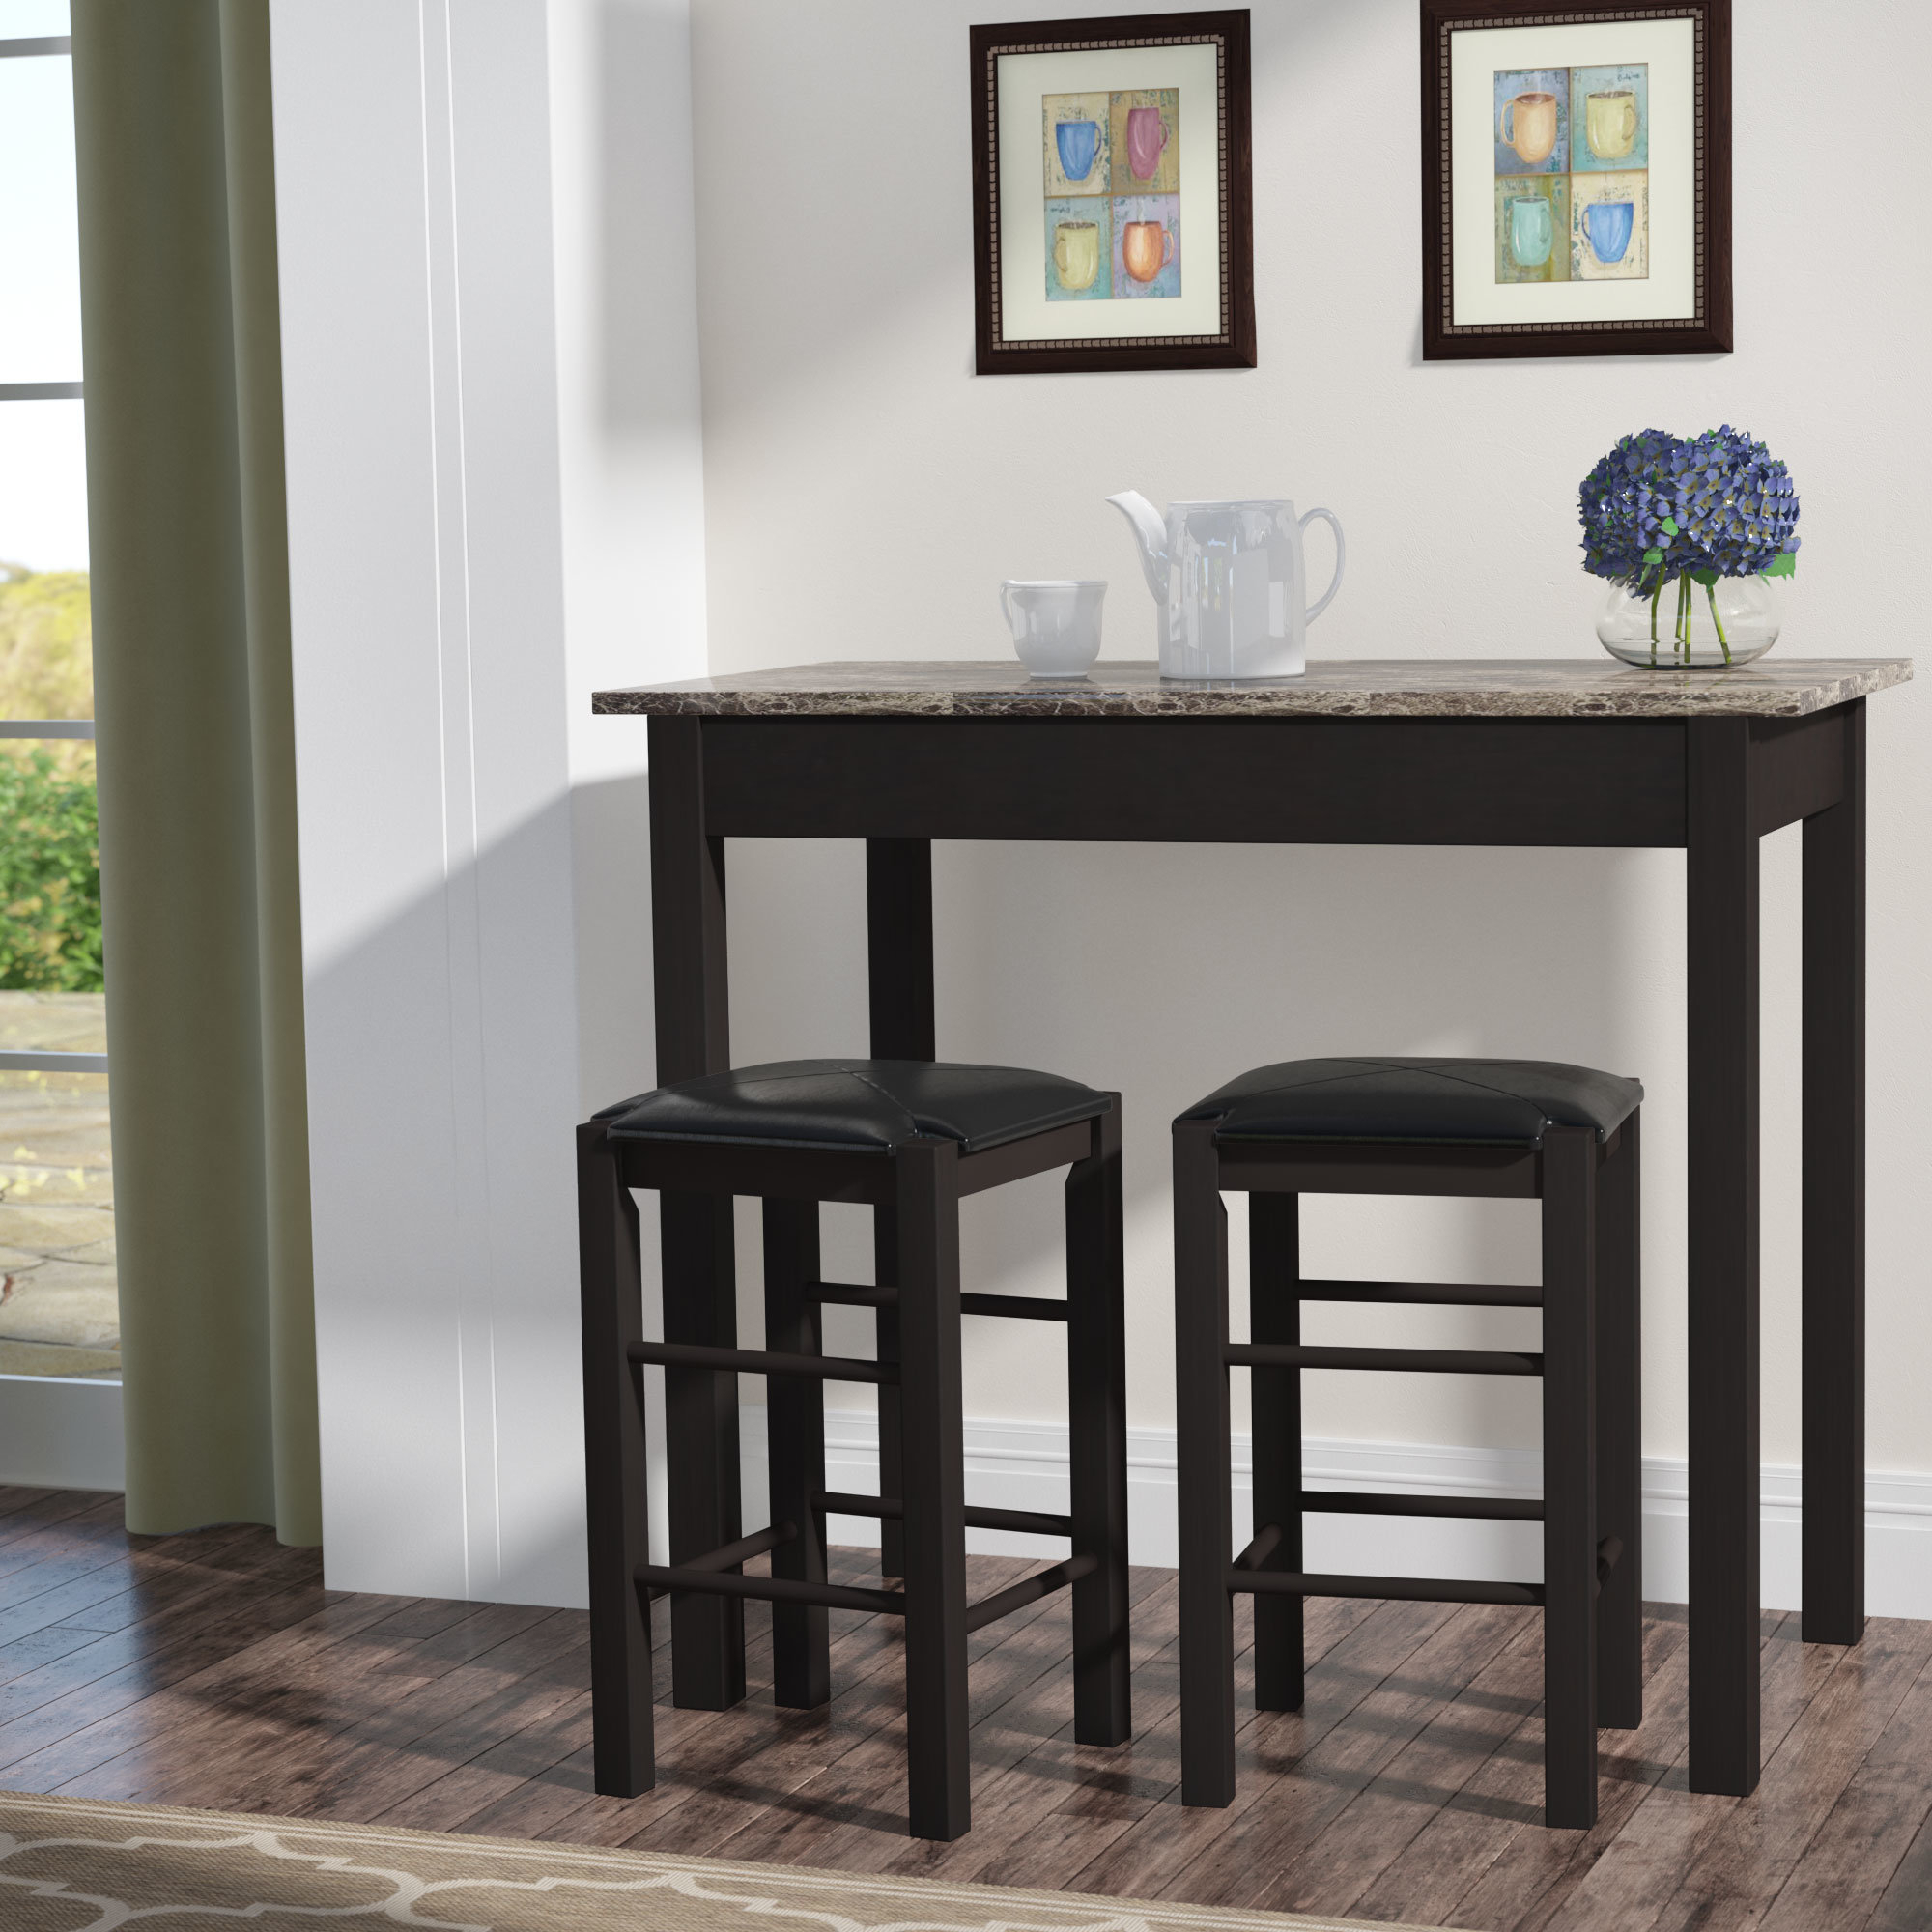 Most Recent Winston Porter Sheetz 3 Piece Counter Height Dining Set & Reviews Pertaining To Lillard 3 Piece Breakfast Nook Dining Sets (View 14 of 25)